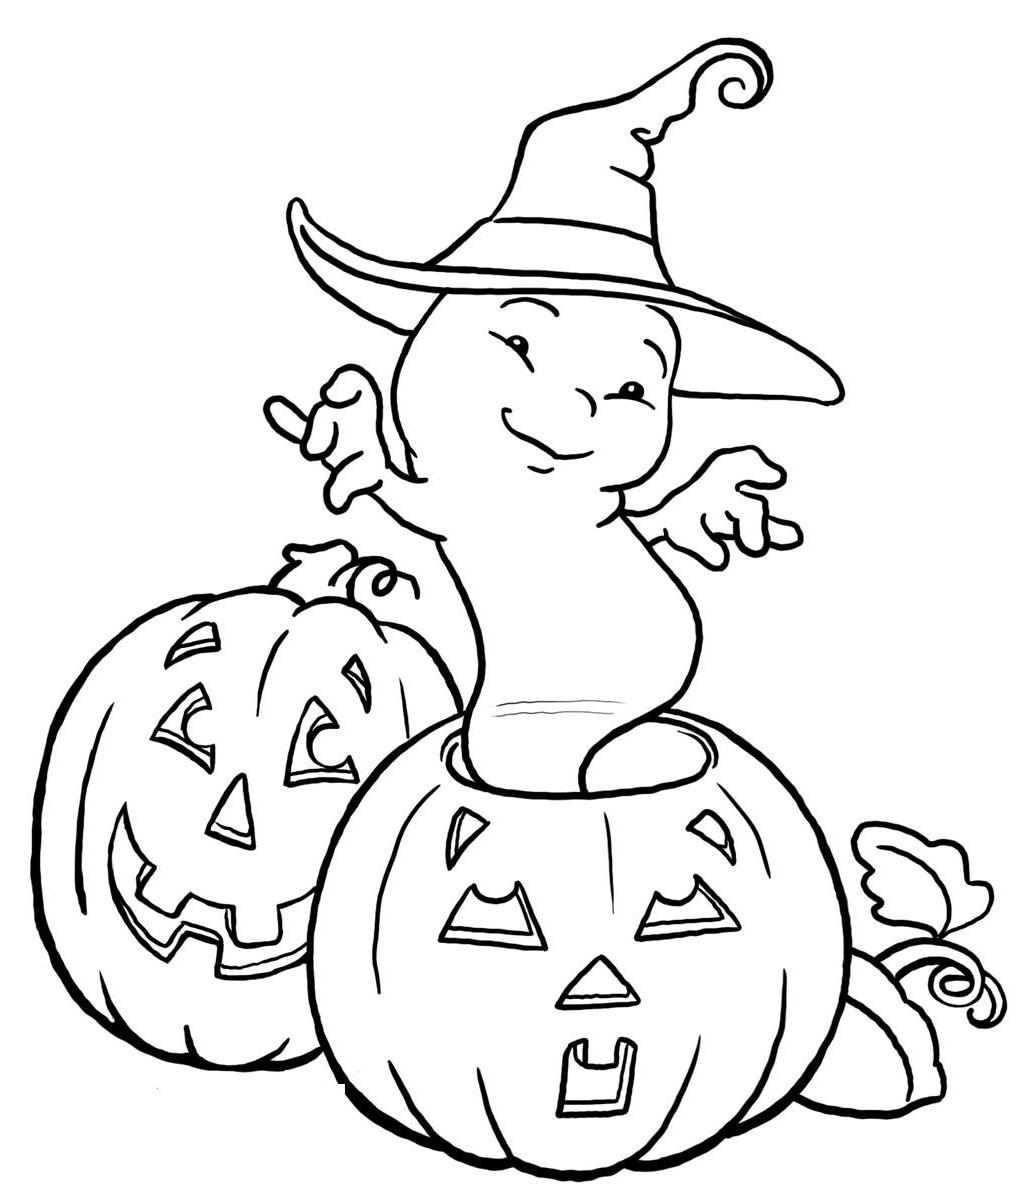 coloring ghost images get this printable ghost coloring pages online 59307 coloring ghost images